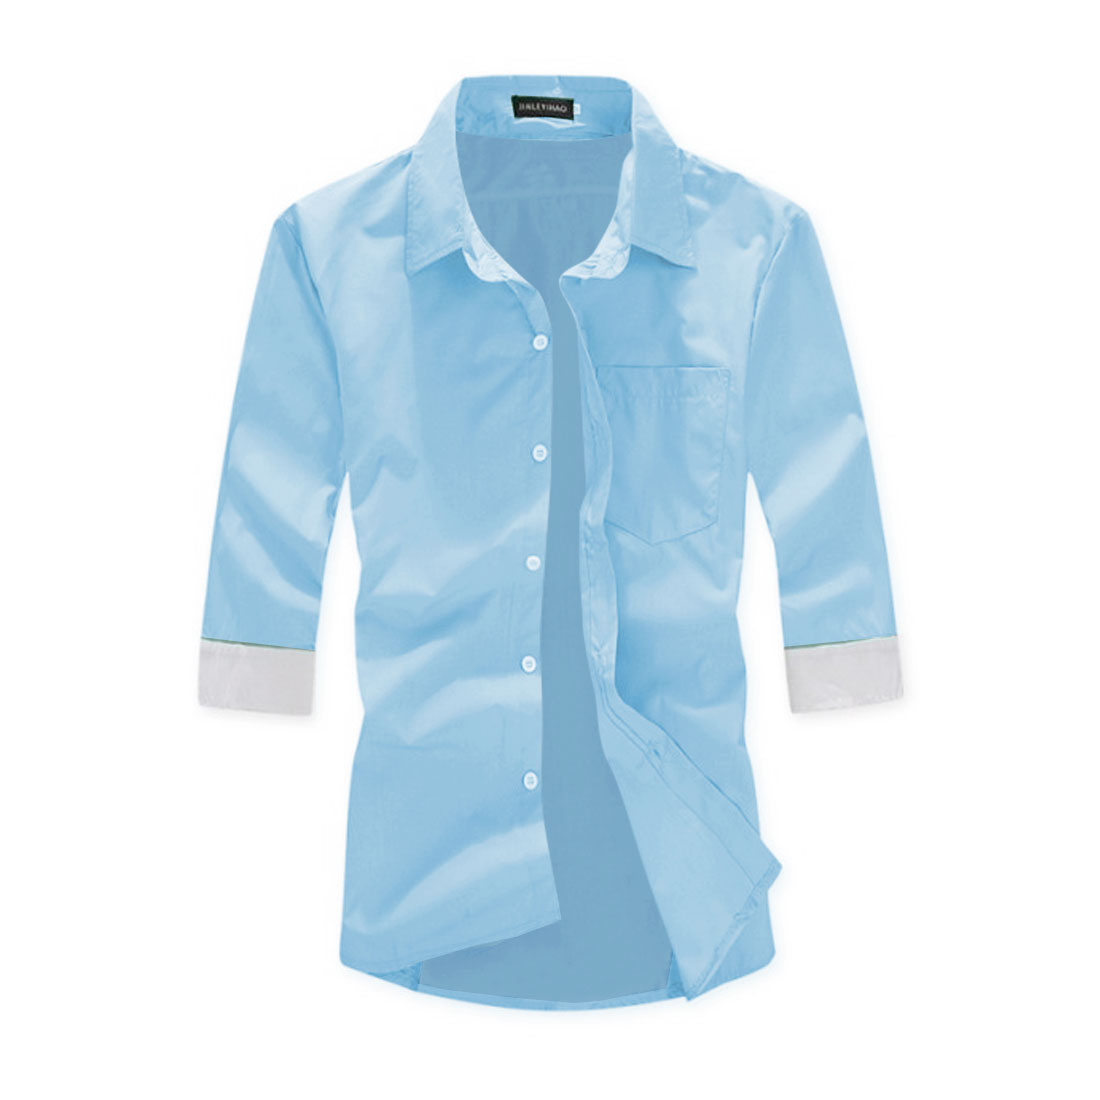 Men Chic Simple Button Front Fitted Light Blue Shirt M